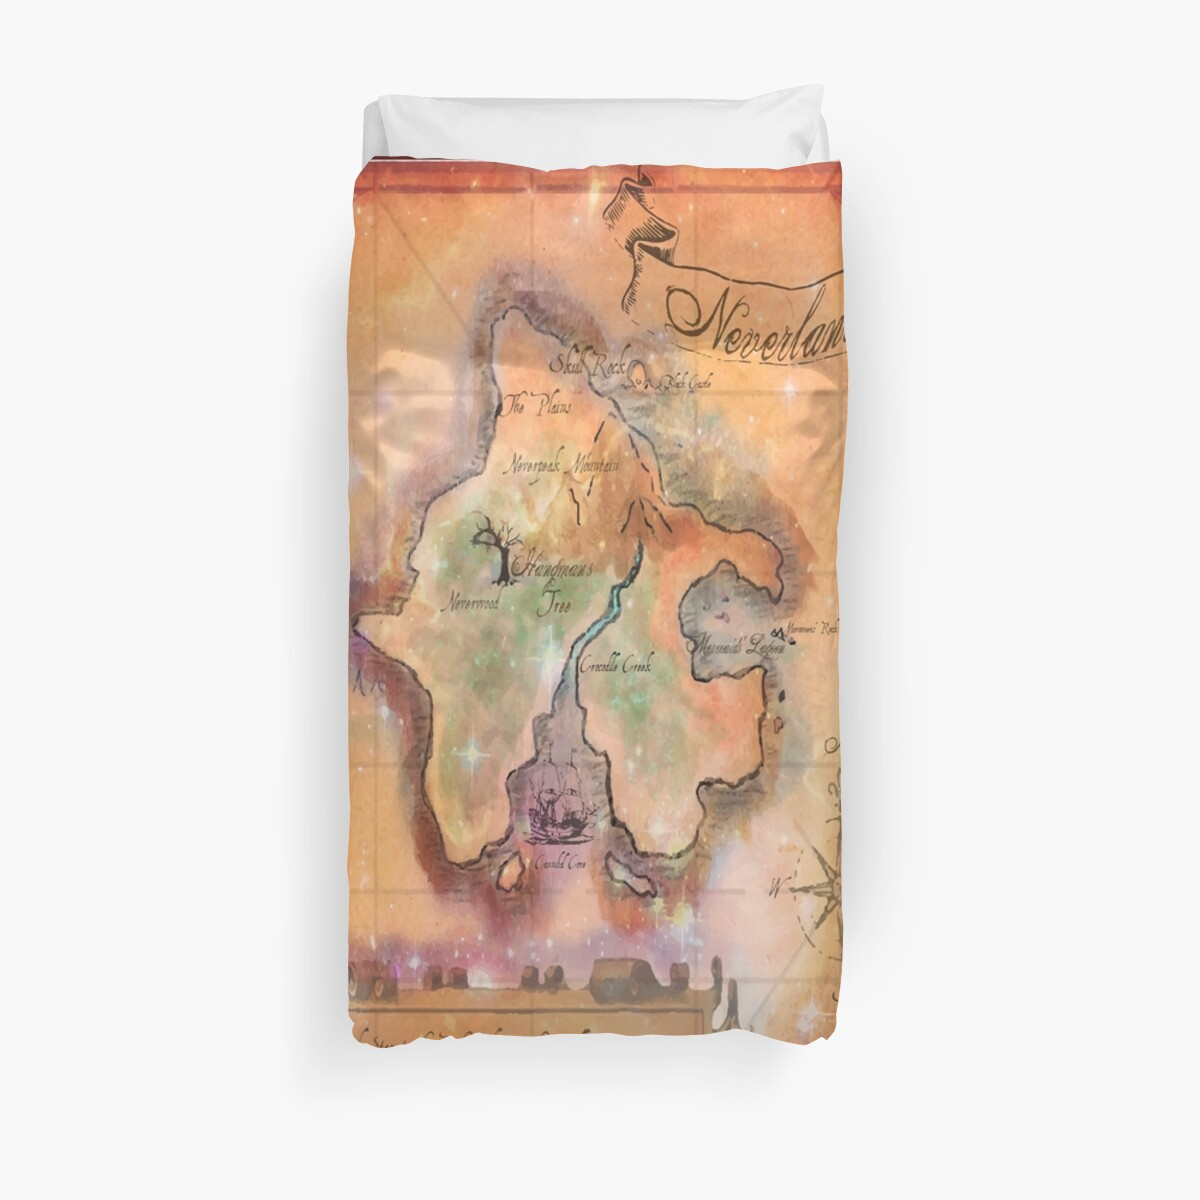 Twin Size Neverland Map by Sophersgreen